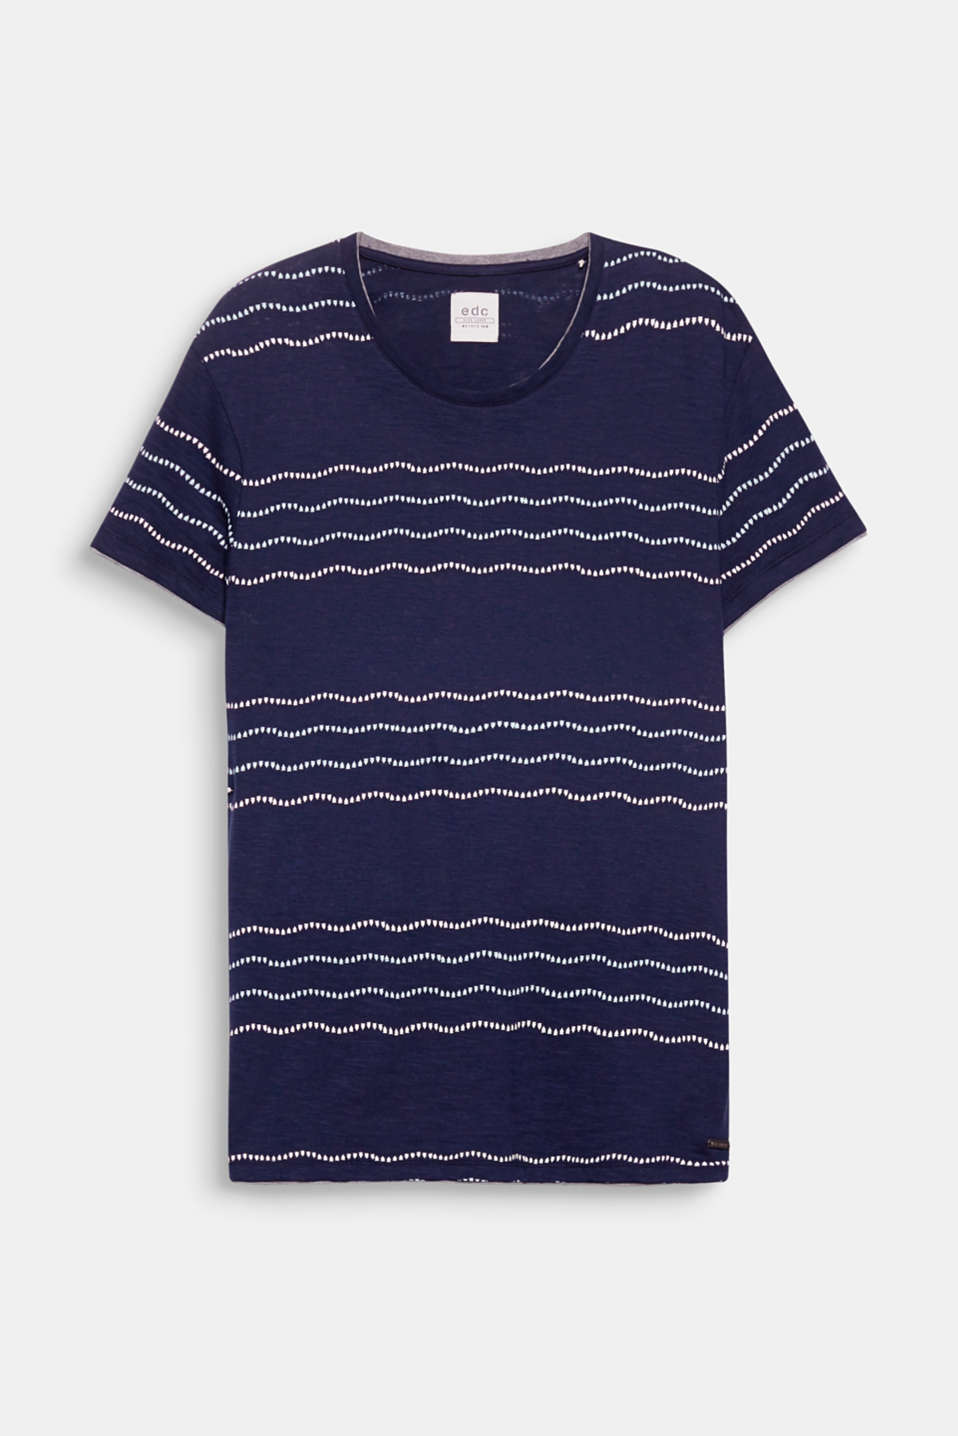 The mobile stripe print in a geometric look and a trim in a contrasting colour result in a modern, layered T-shirt.